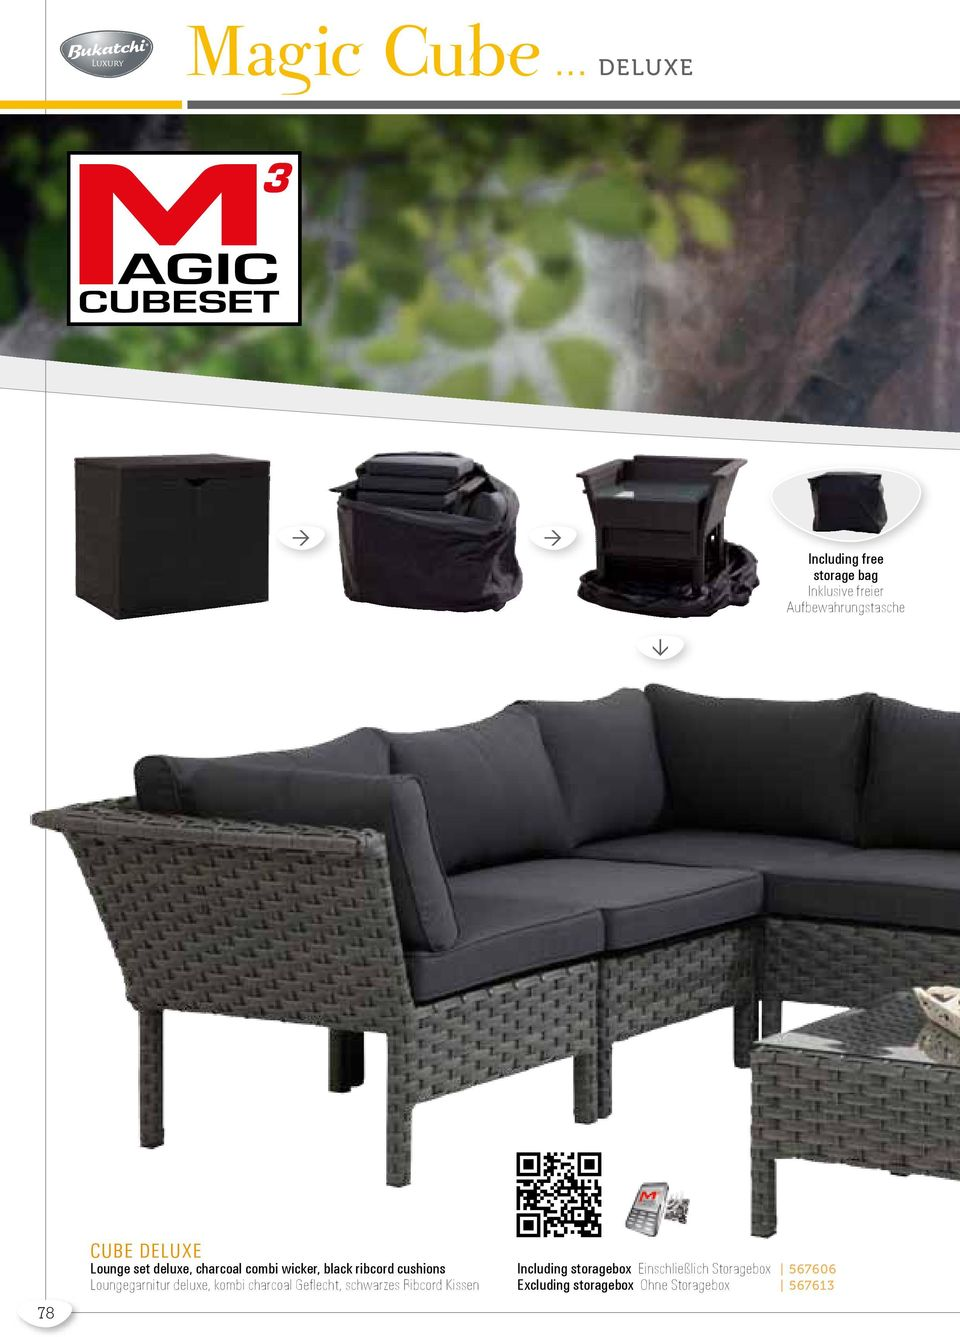 deluxe Lounge set deluxe, charcoal combi wicker, black ribcord cushions